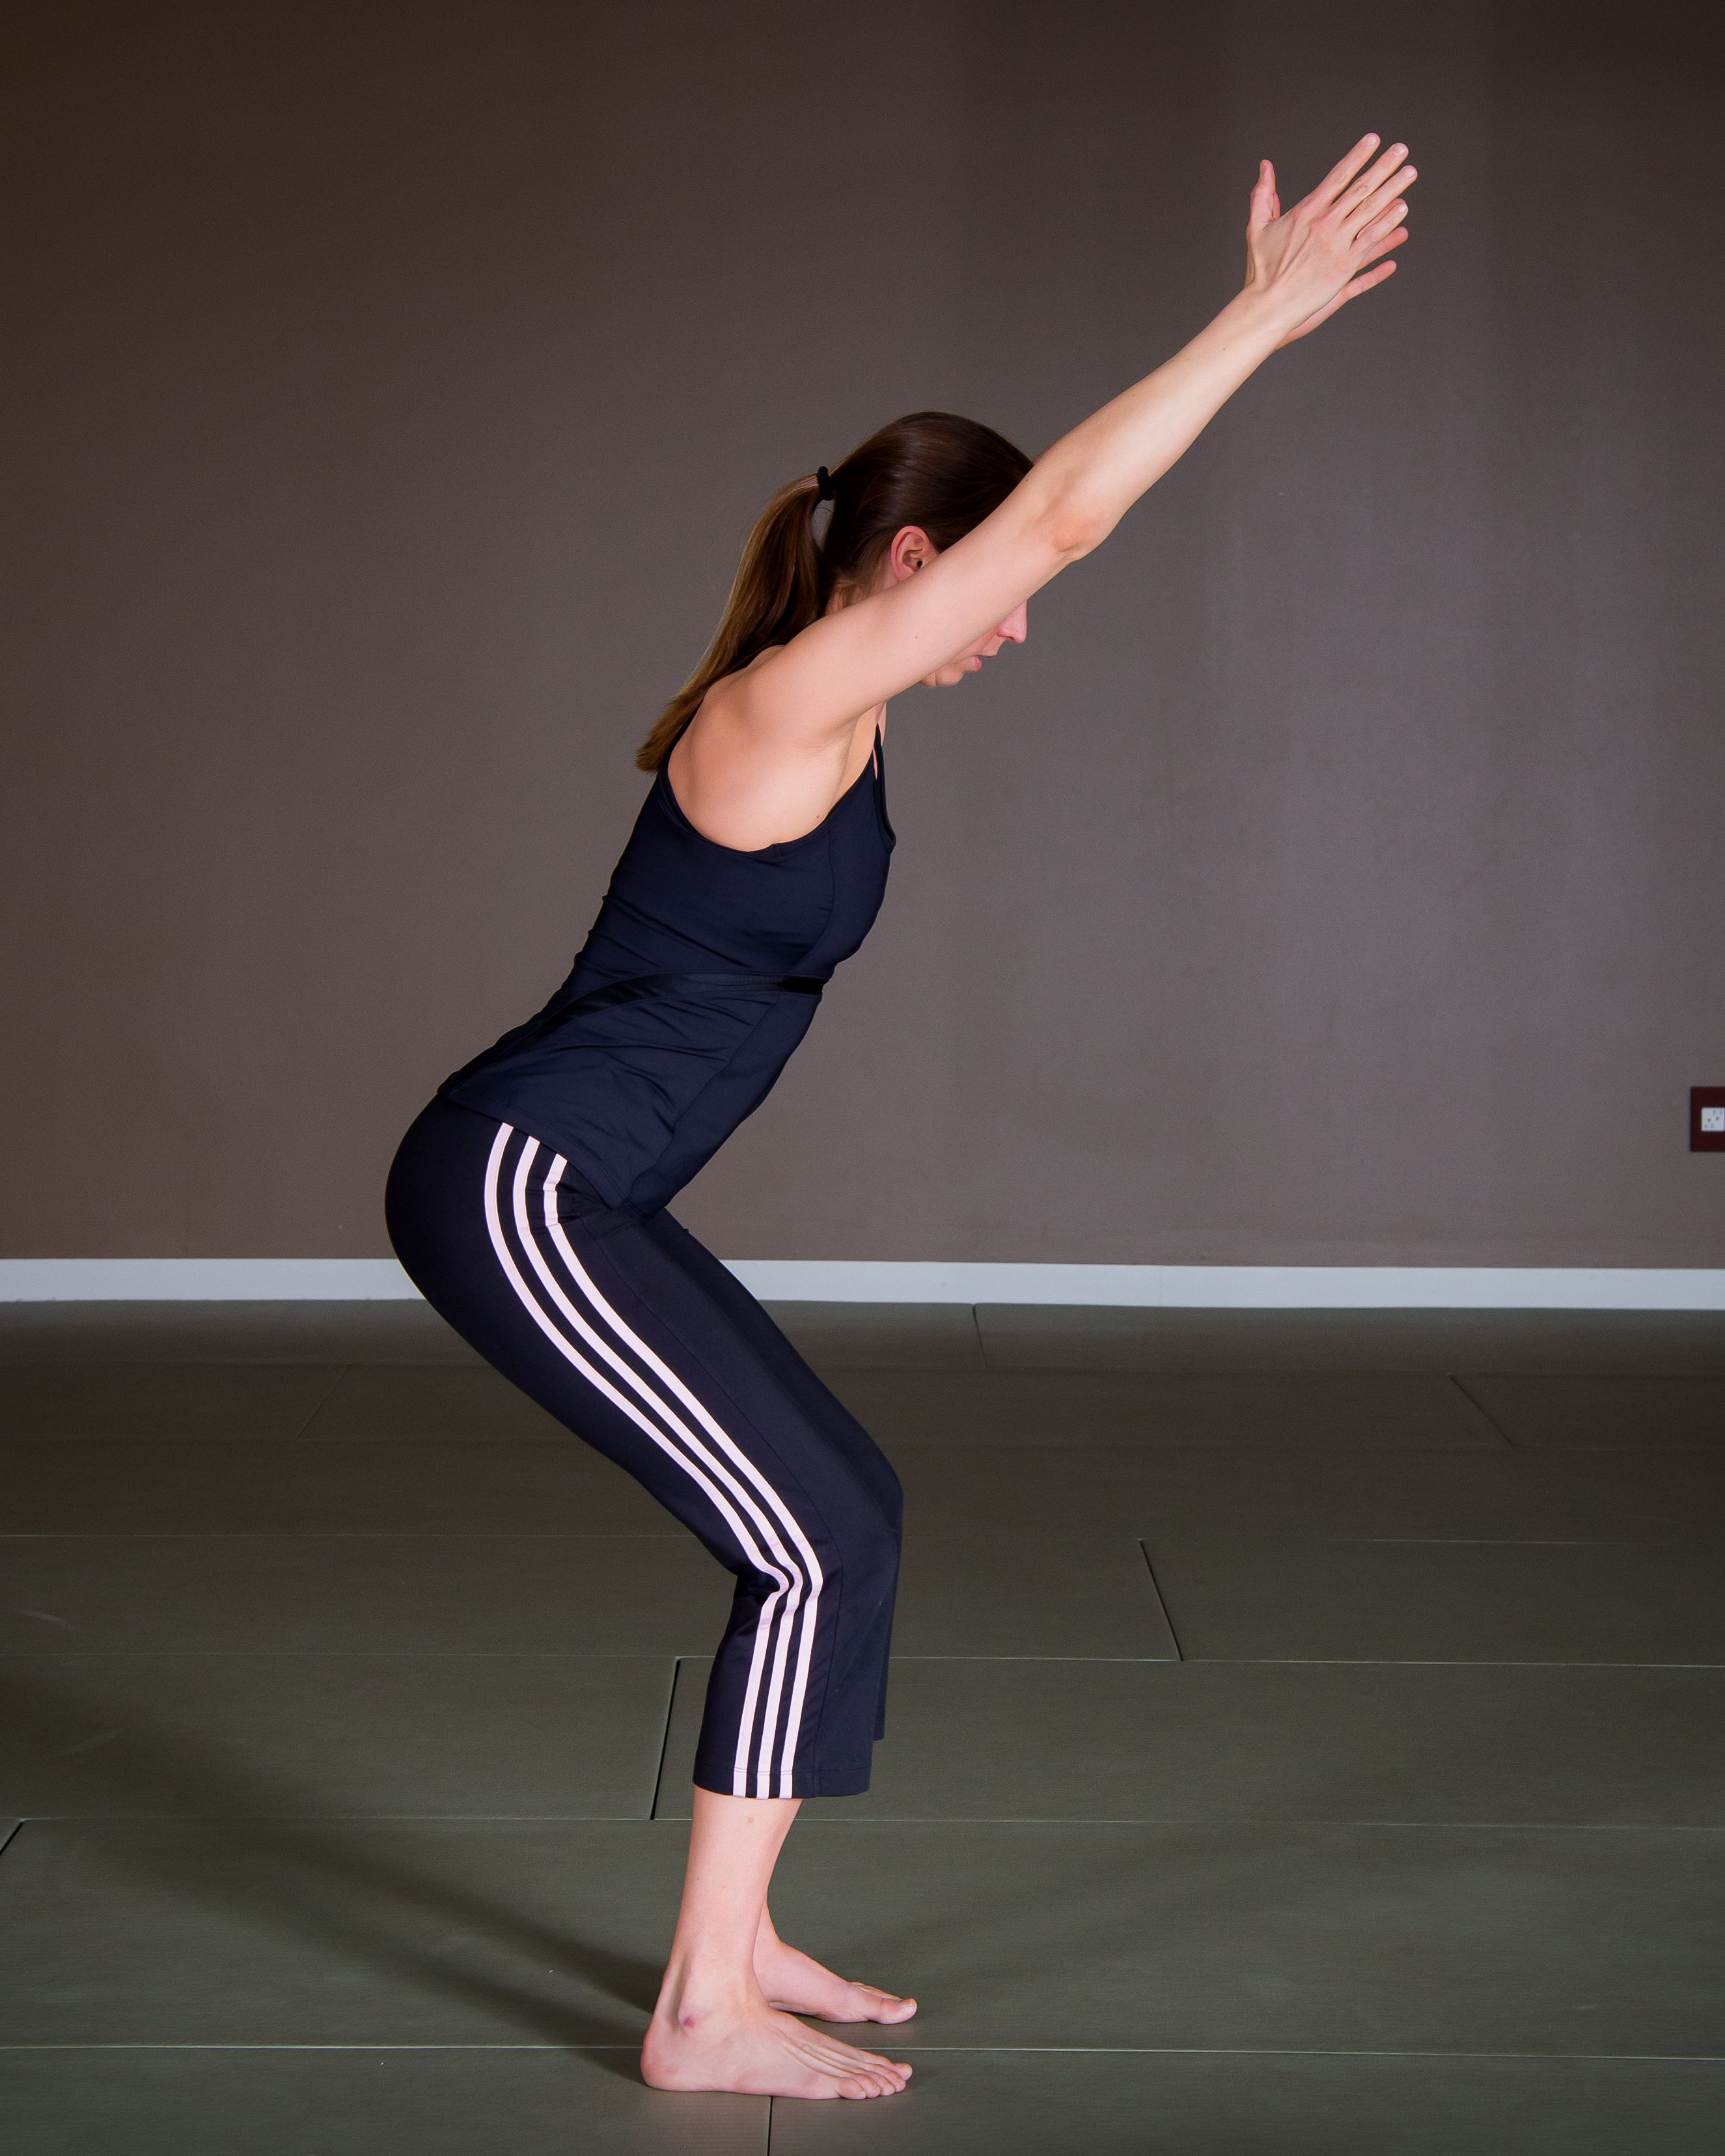 Why Pulling Your Shoulders Back and Down is Bad Advice! 3 Steps for Good Posture  @coreXsolutions